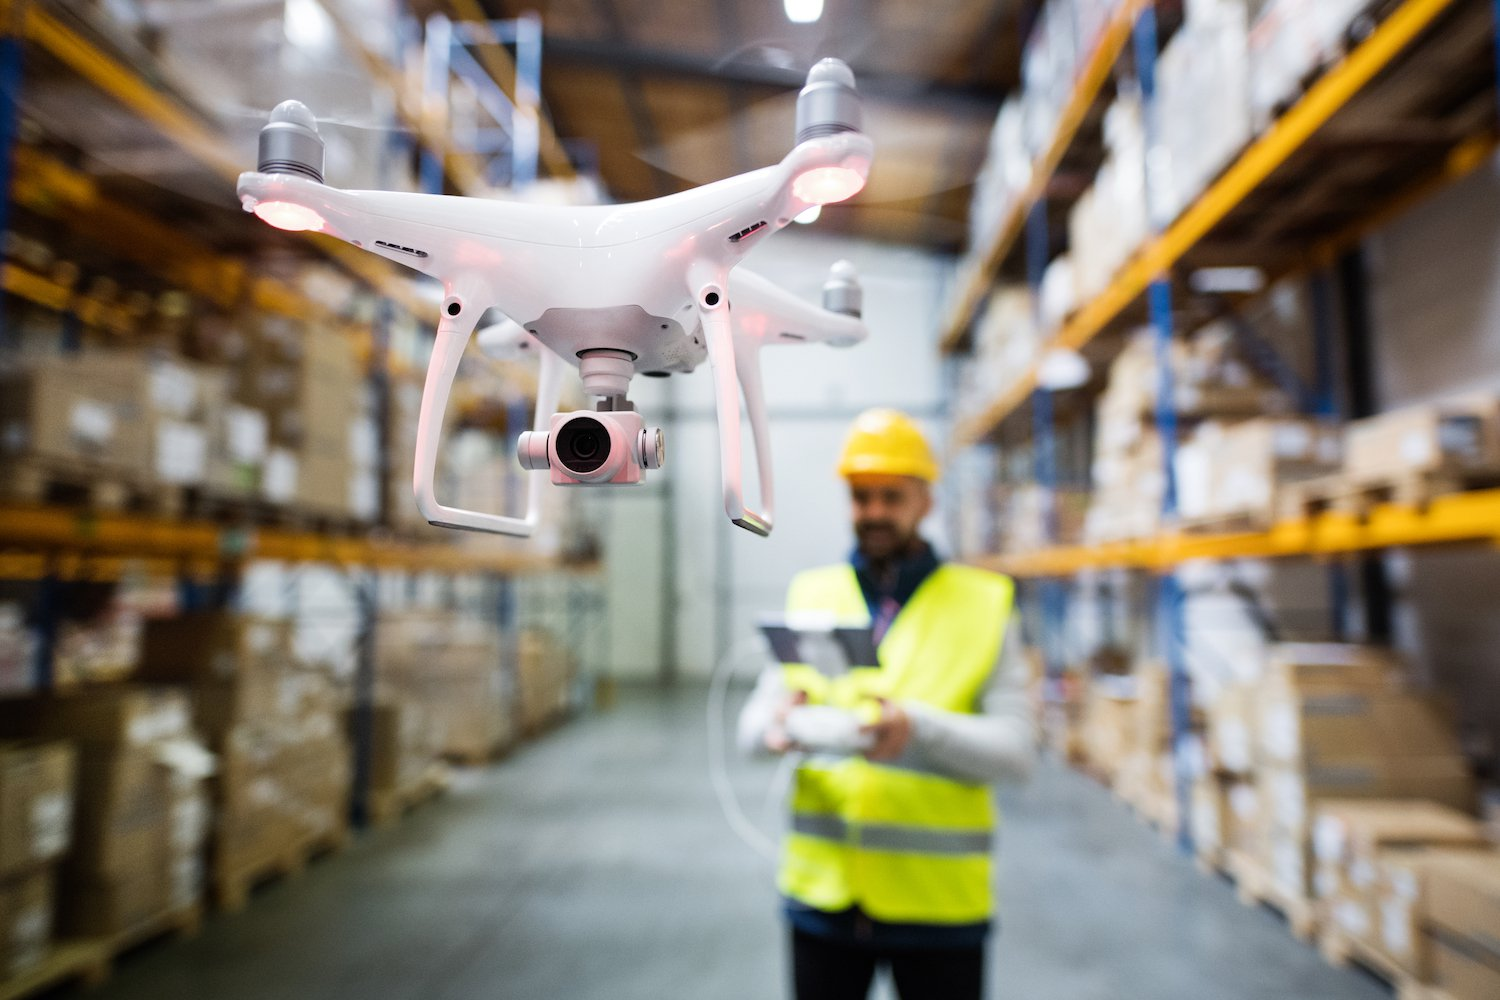 Walmart Explores Blockchain for Connecting Automated Delivery Drones